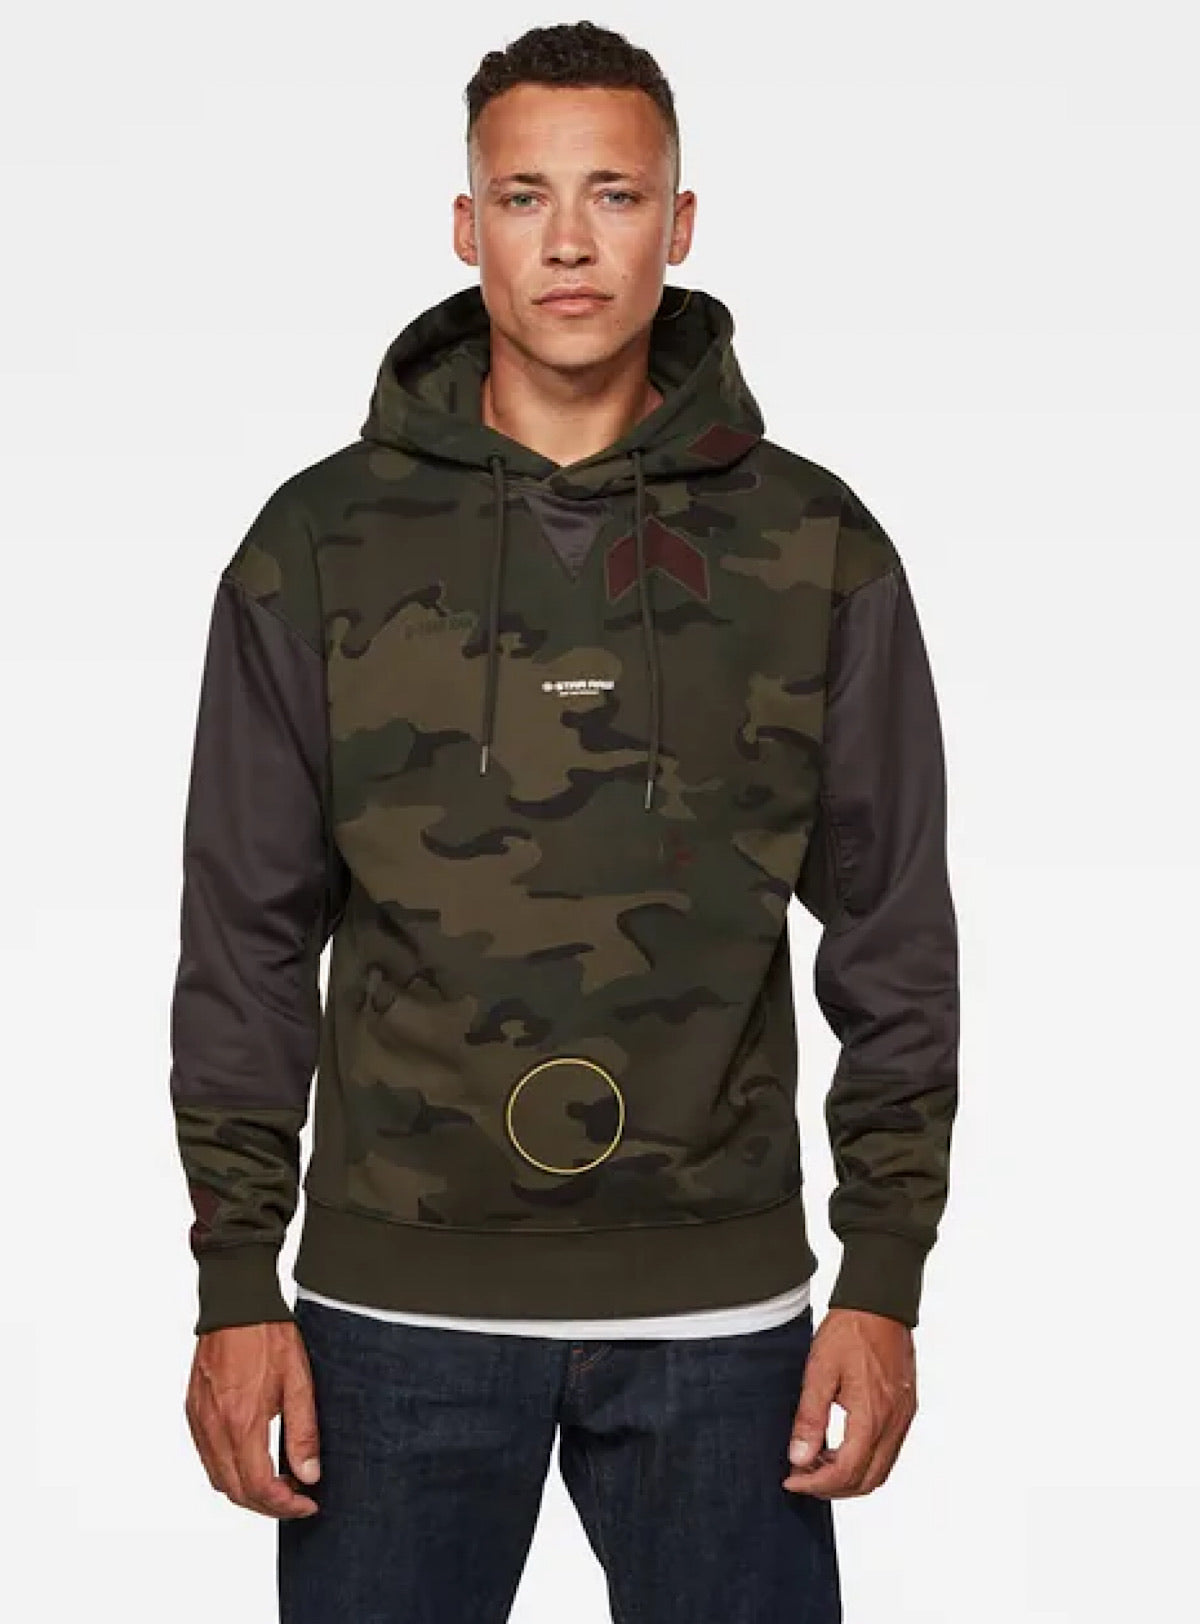 G-Star Hoodie - Moto Micro Camo - Forest Night Camo - D17680